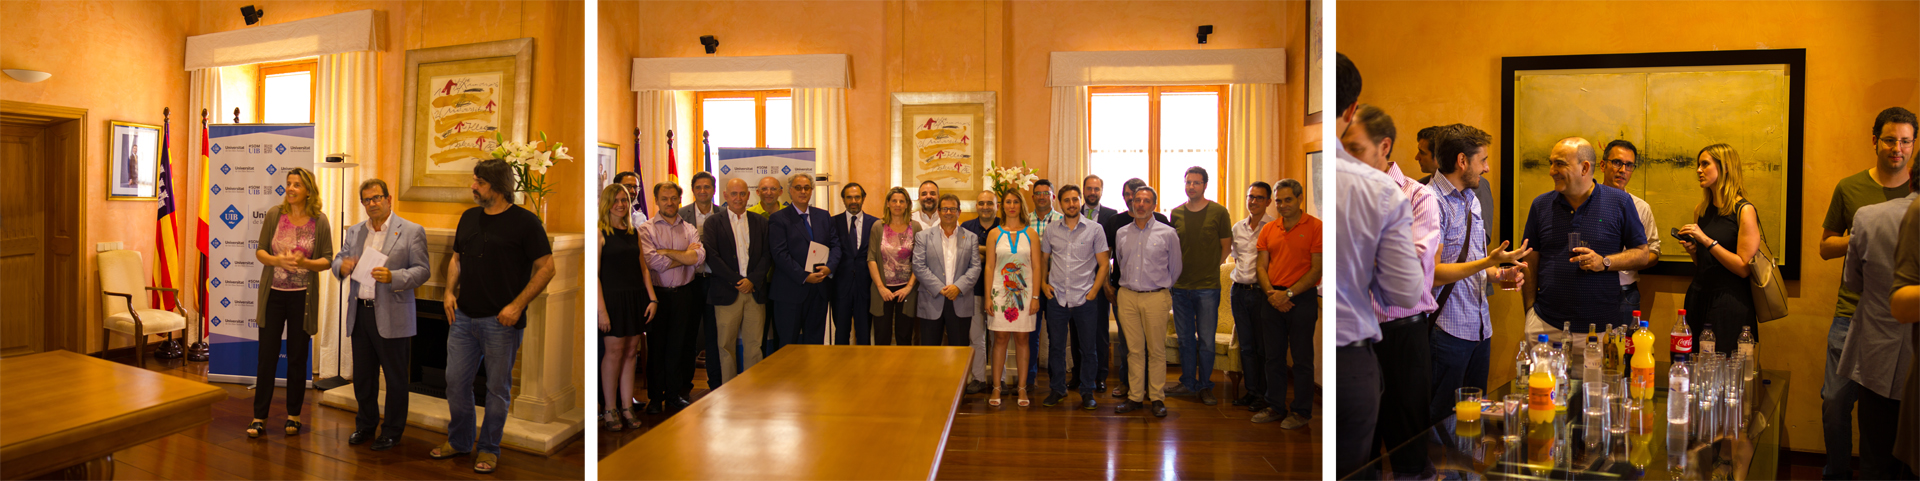 Wireless DNA in cooperation with the University of the Balearic Islands official launches a program of activities to encourage ingenuity, creativity and innovation in the field of engineering and mathematics to promote the opportunities offered for future young engineers.